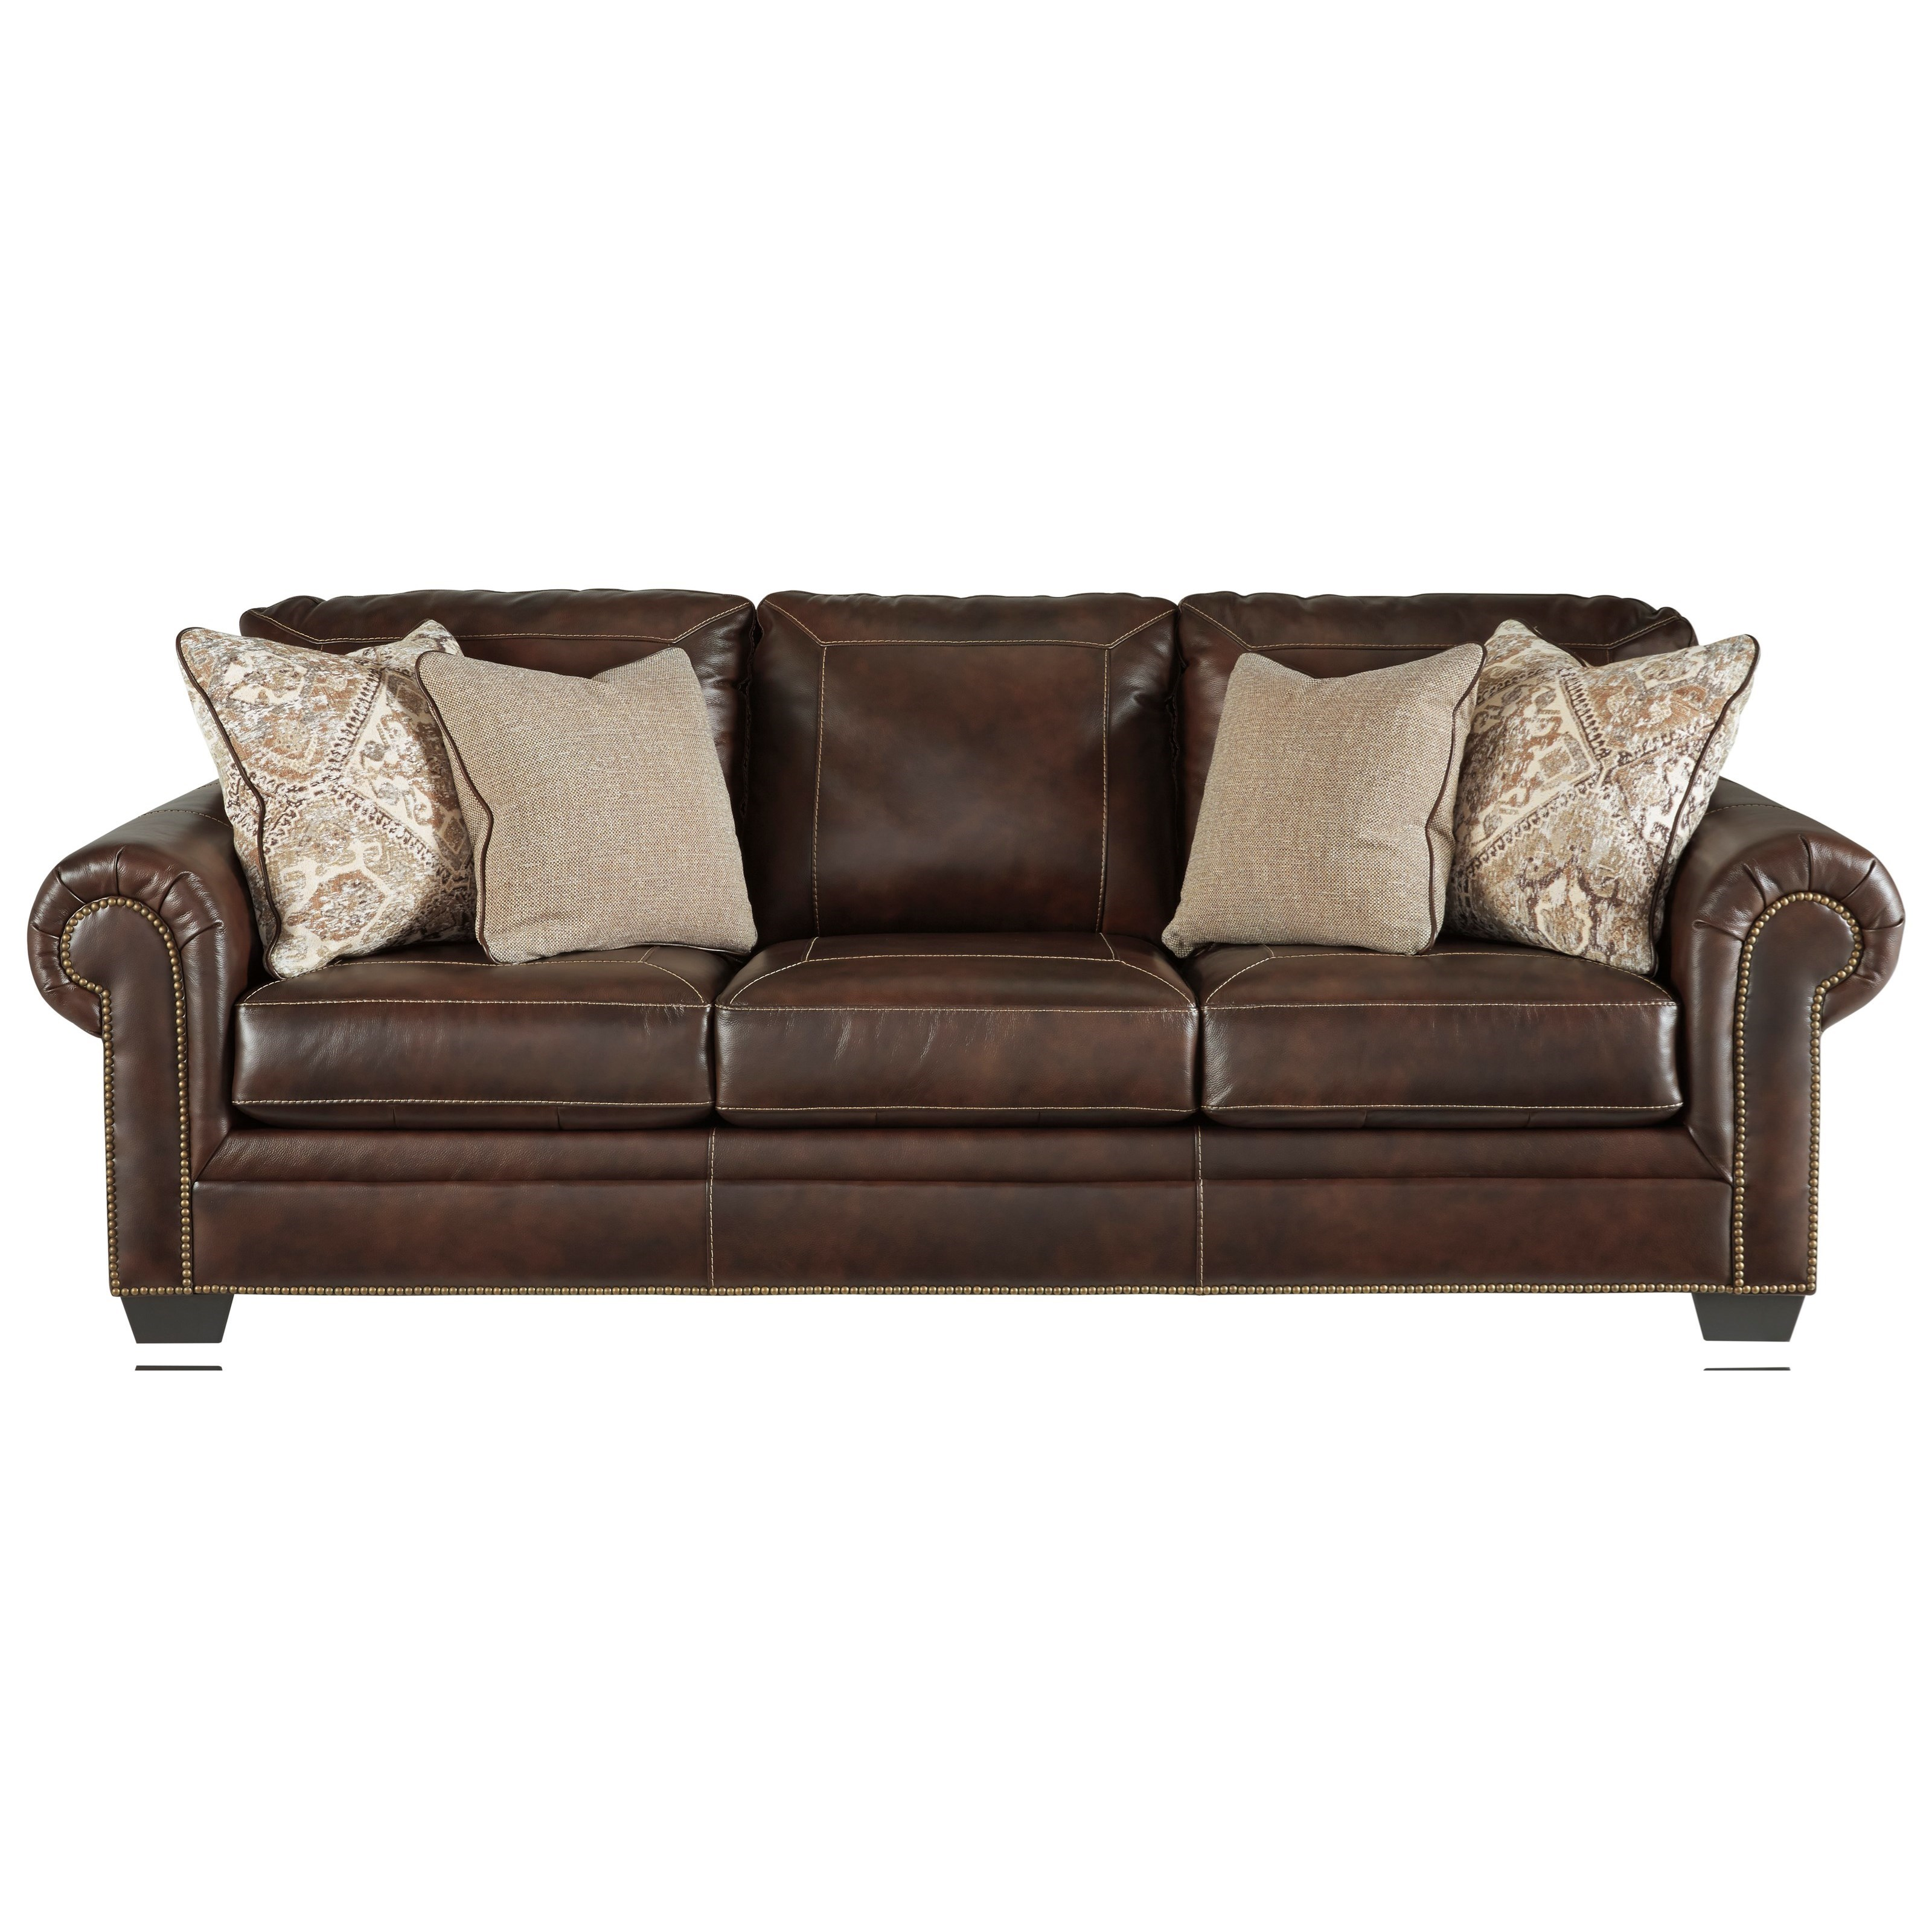 Roleson Sofa by Signature Design by Ashley at Northeast Factory Direct